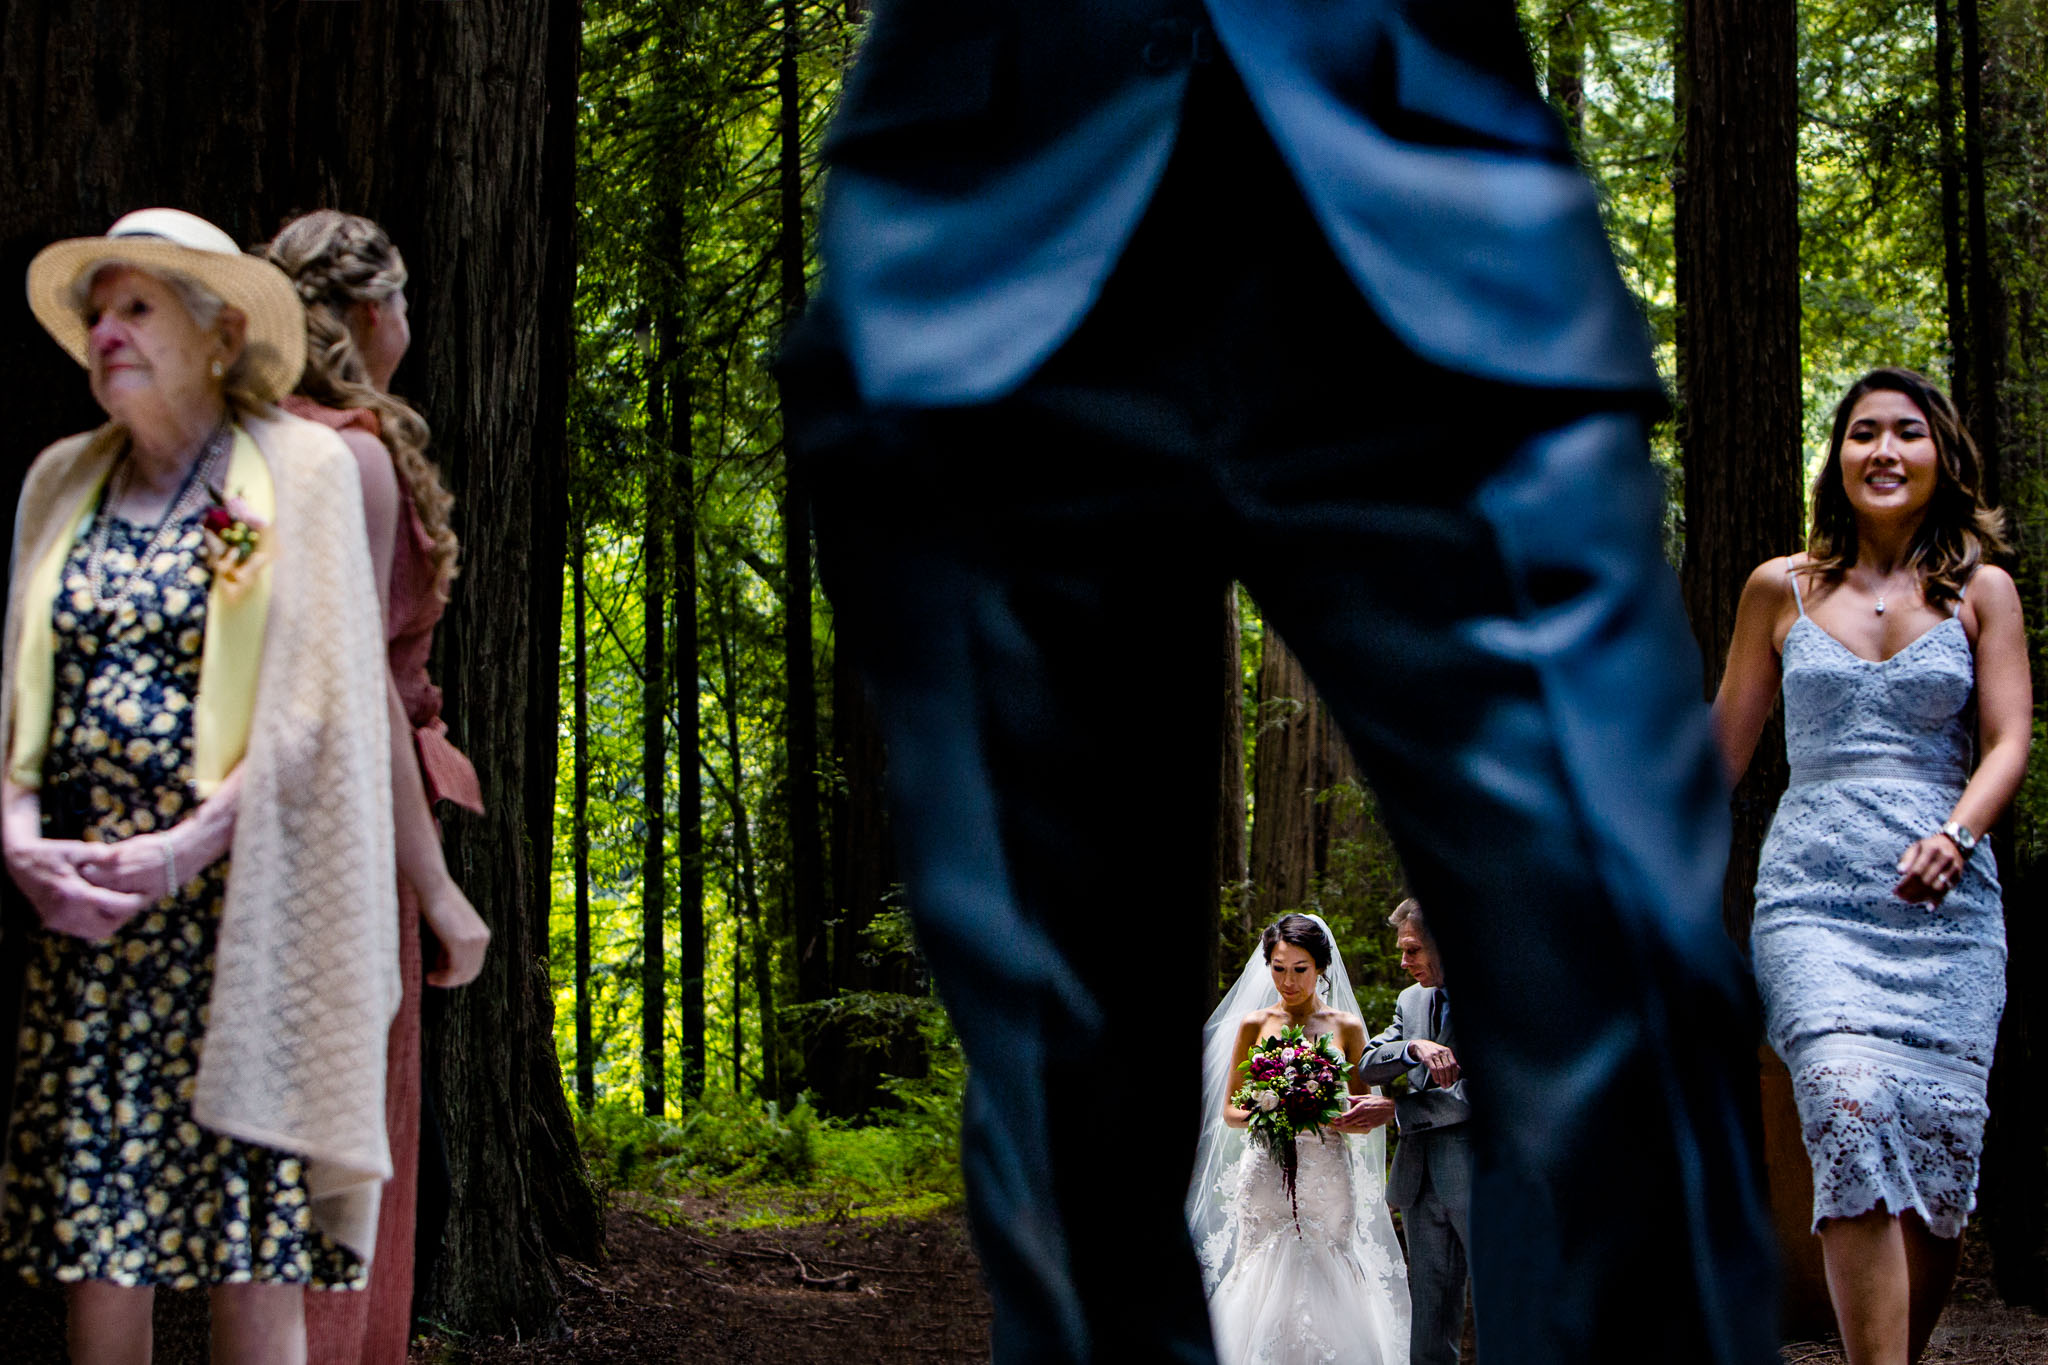 Bride waiting with father before entering ceremony in Avenue of the Giants - award winning wedding photo by JOS studios